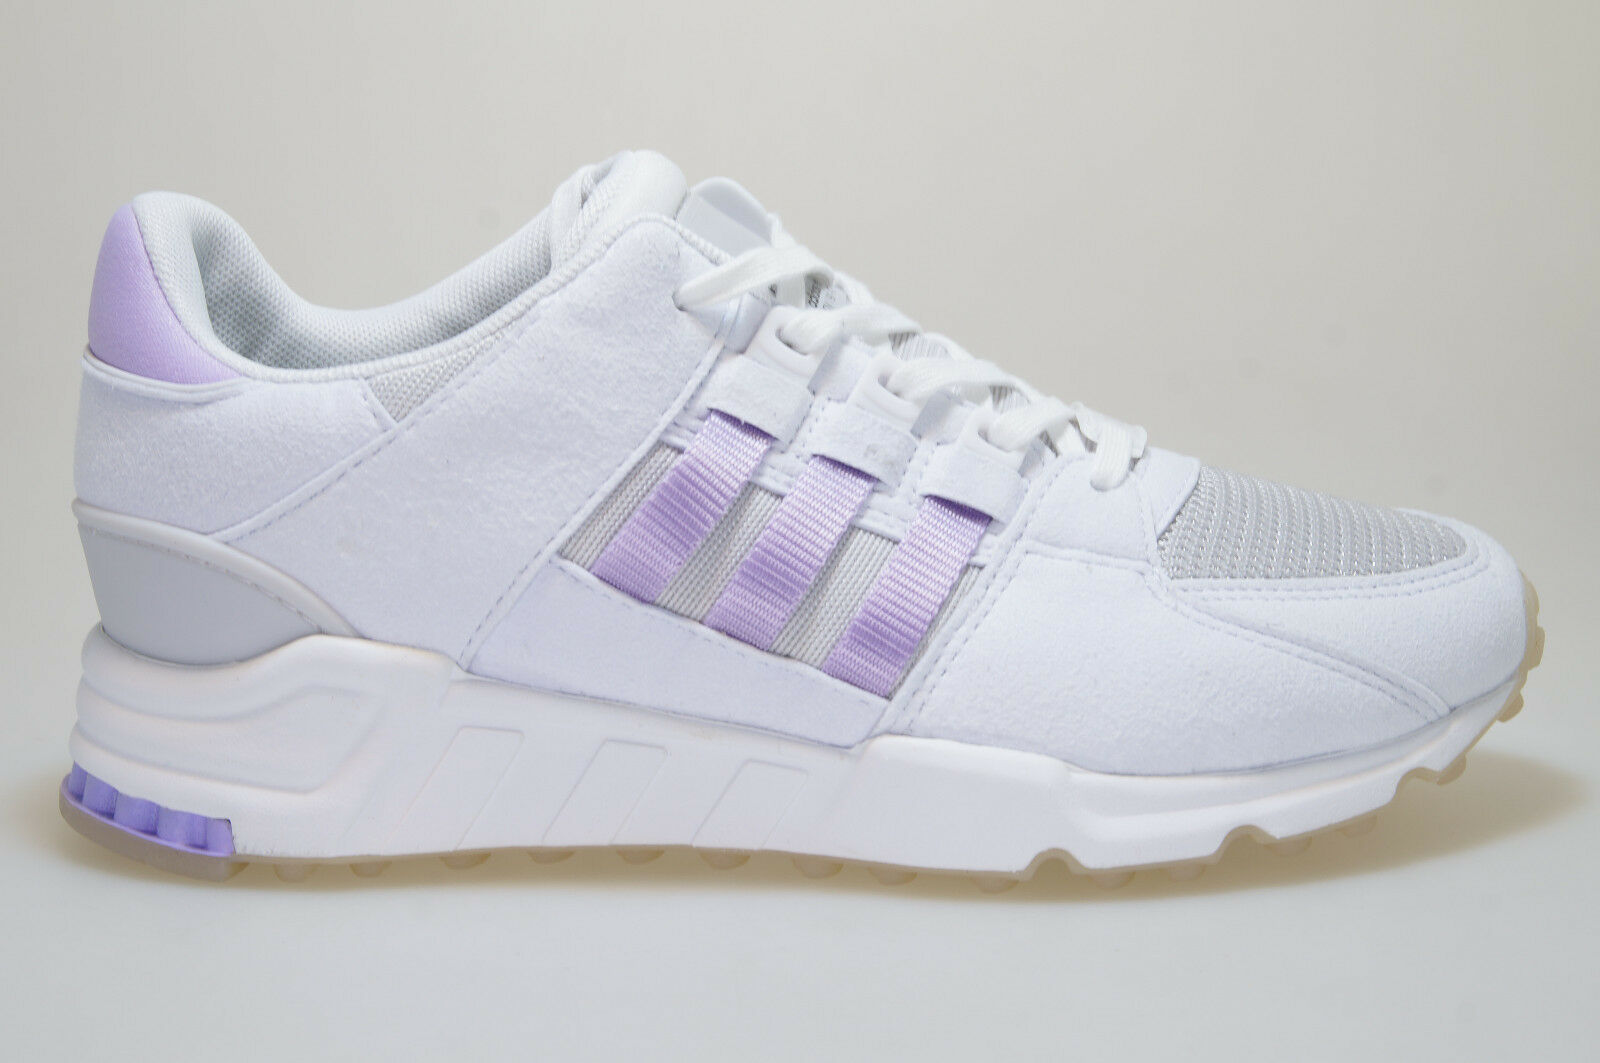 ADIDAS EQUIPMENT SUPPORT RF W by9105 Bianco/Lilla Eqt SCARPE SNEAKER